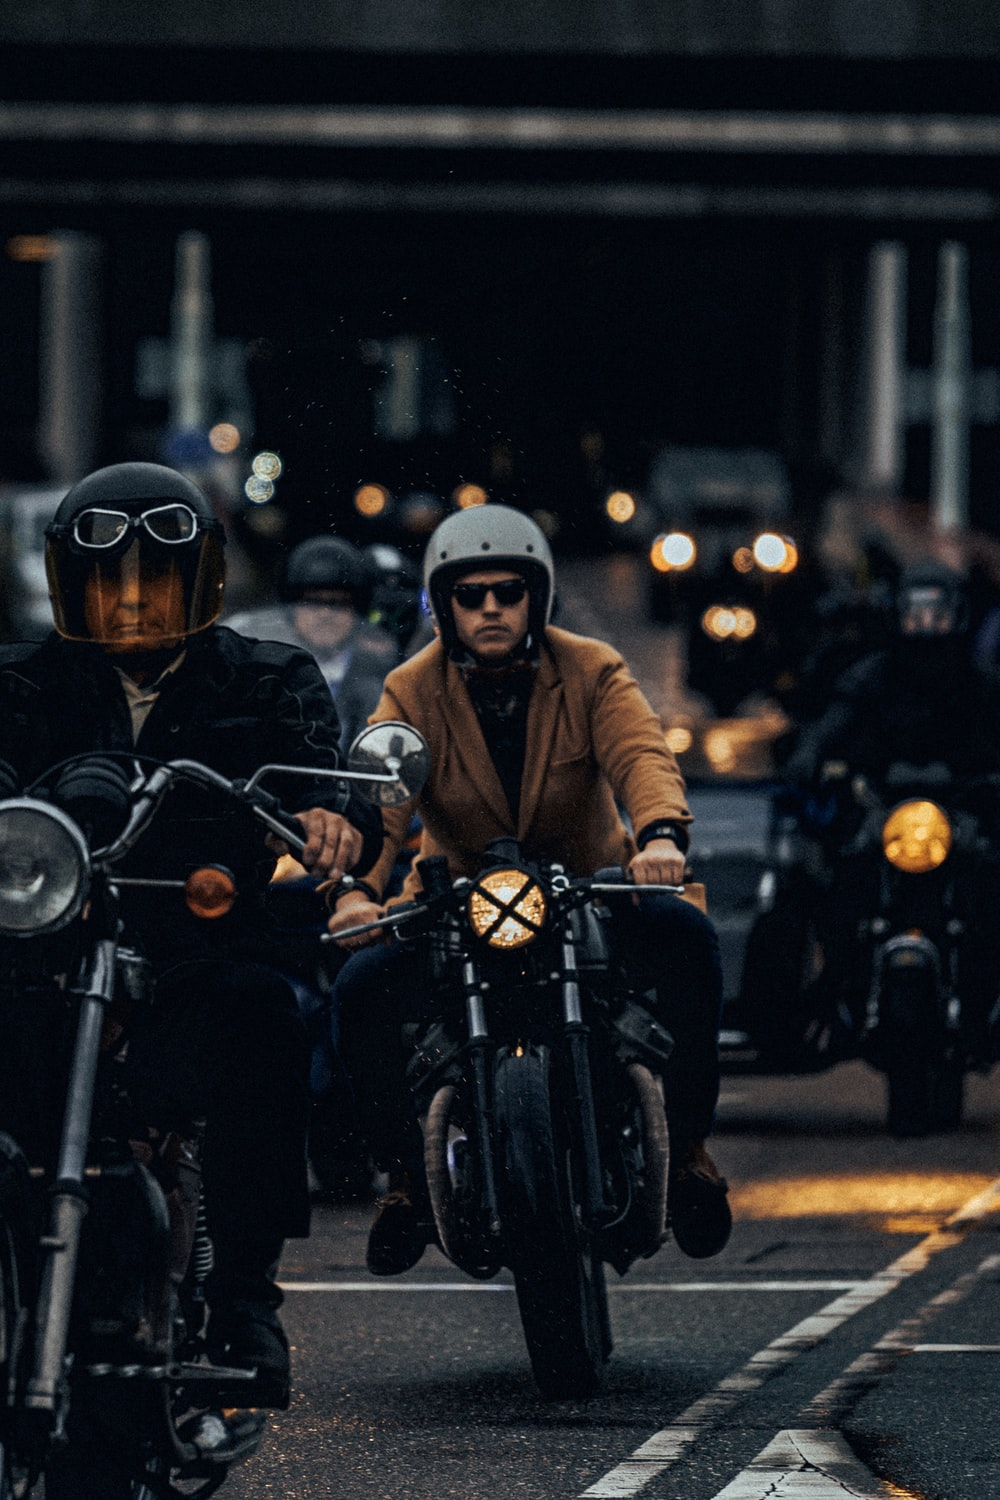 man riding on black motorcycle close-up photography